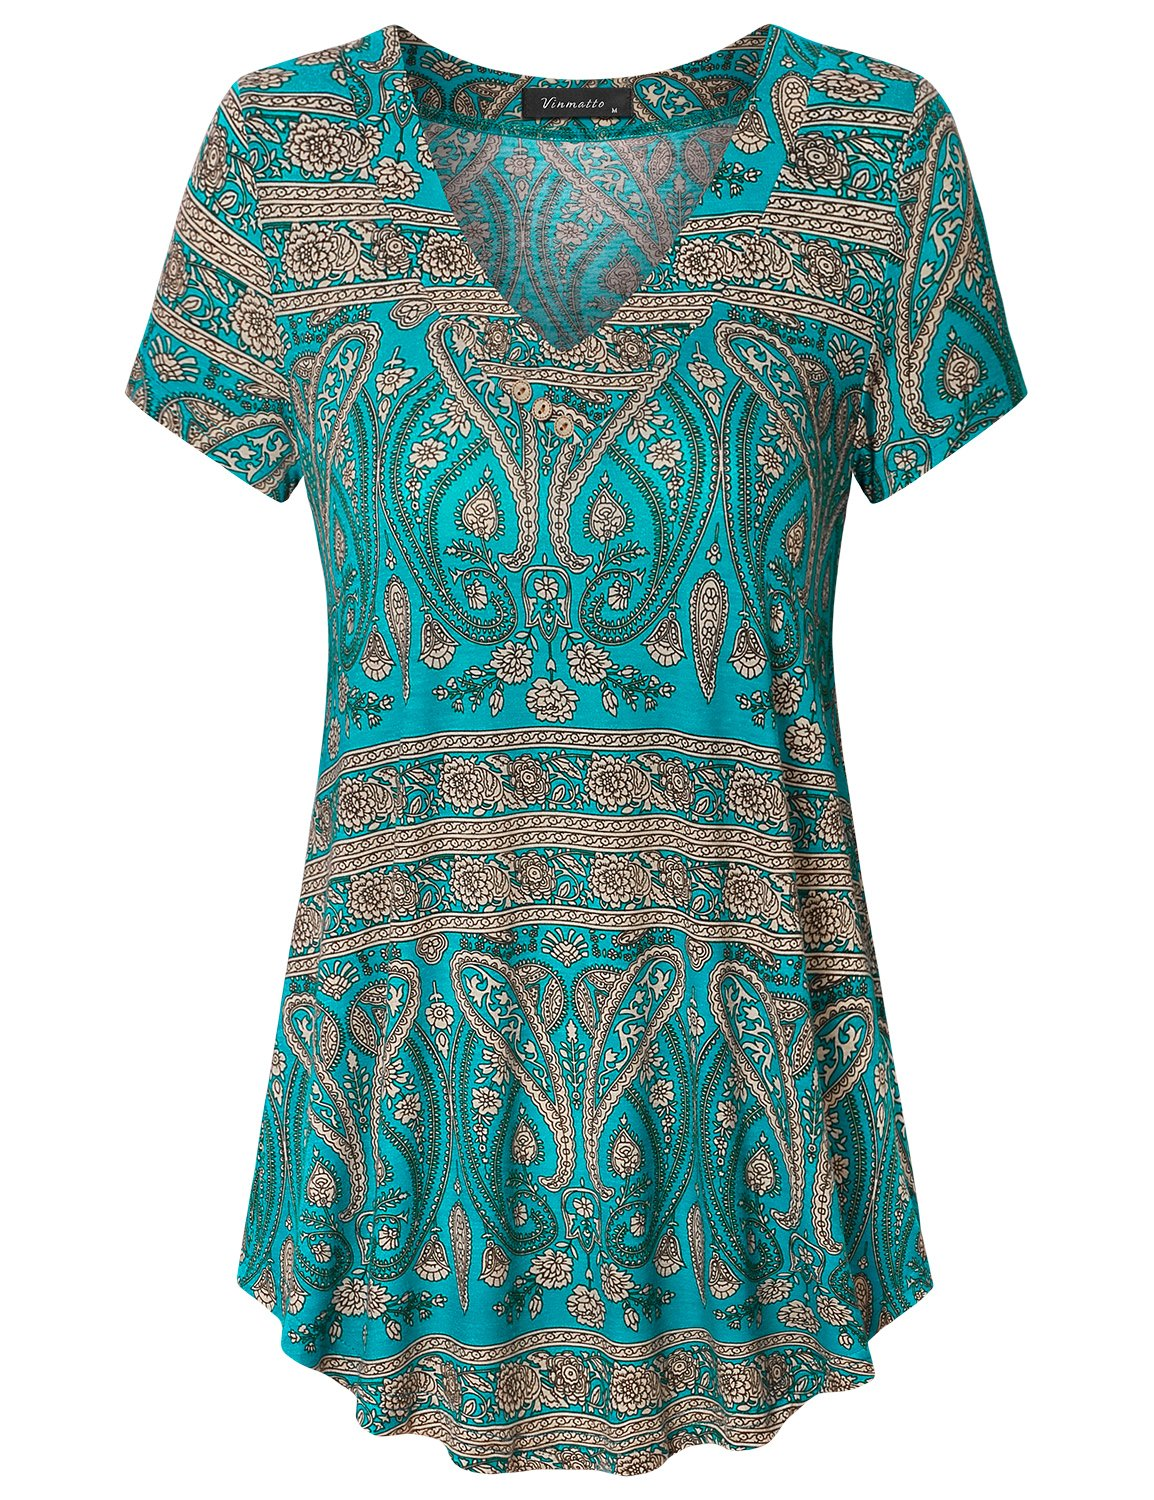 2959eef88d0 Best Rated in Women s Tunics   Helpful Customer Reviews - Amazon.com